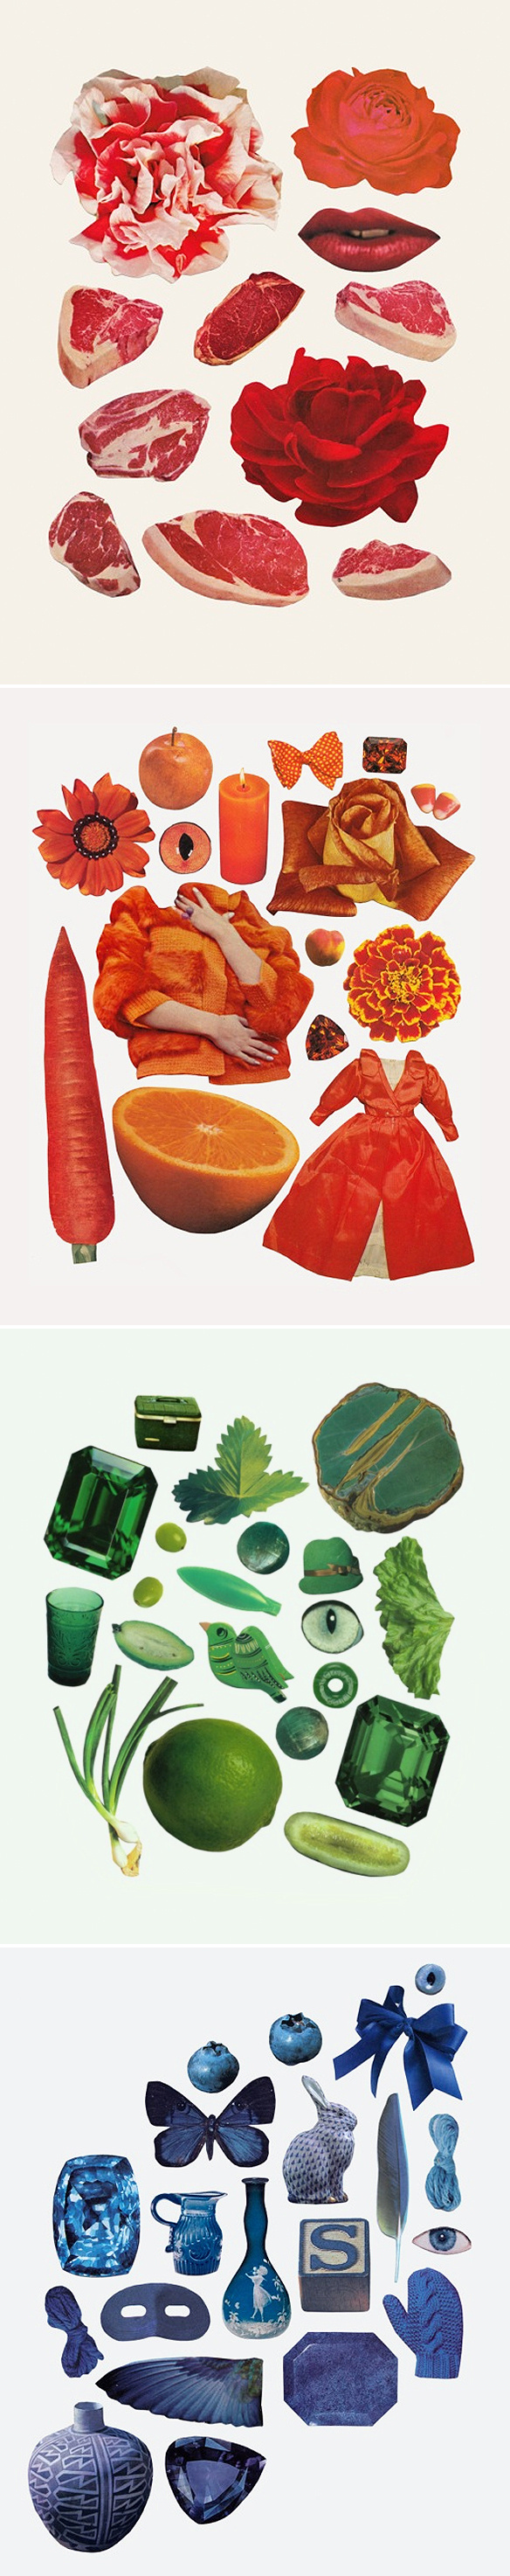 Beth Hoeckel - Collage #objects #paraphernalia #items #sets #illustration #art #collage #colour #deconstructed